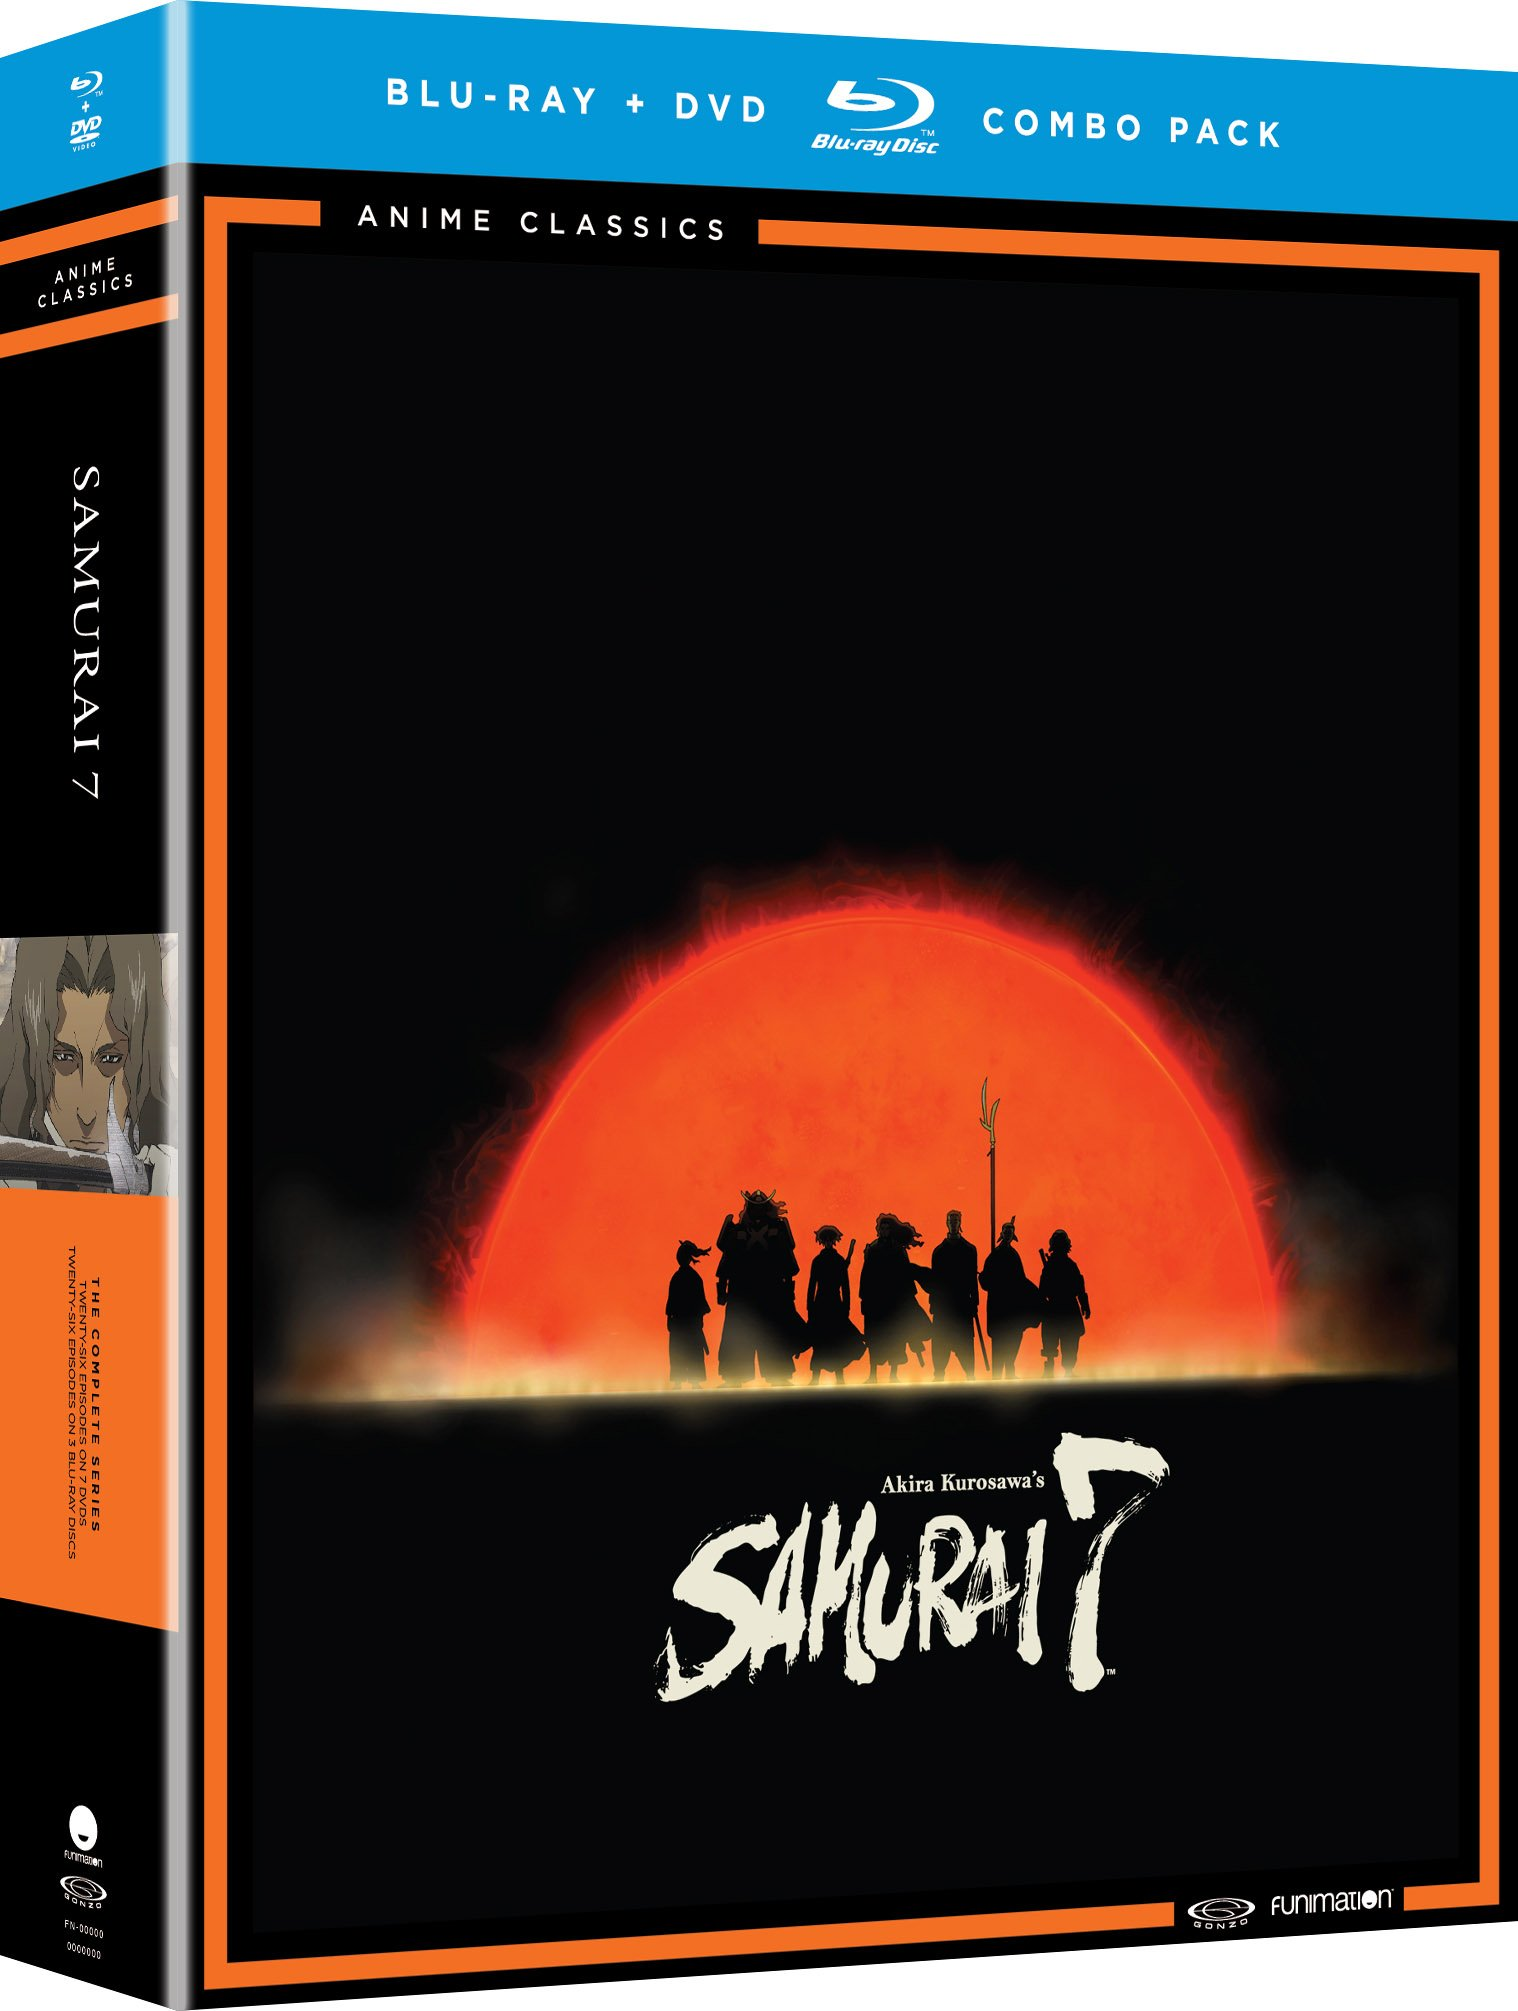 Blu-ray : Samurai 7: The Complete Series - Anime Classics (With DVD, Boxed Set, 10 Disc)